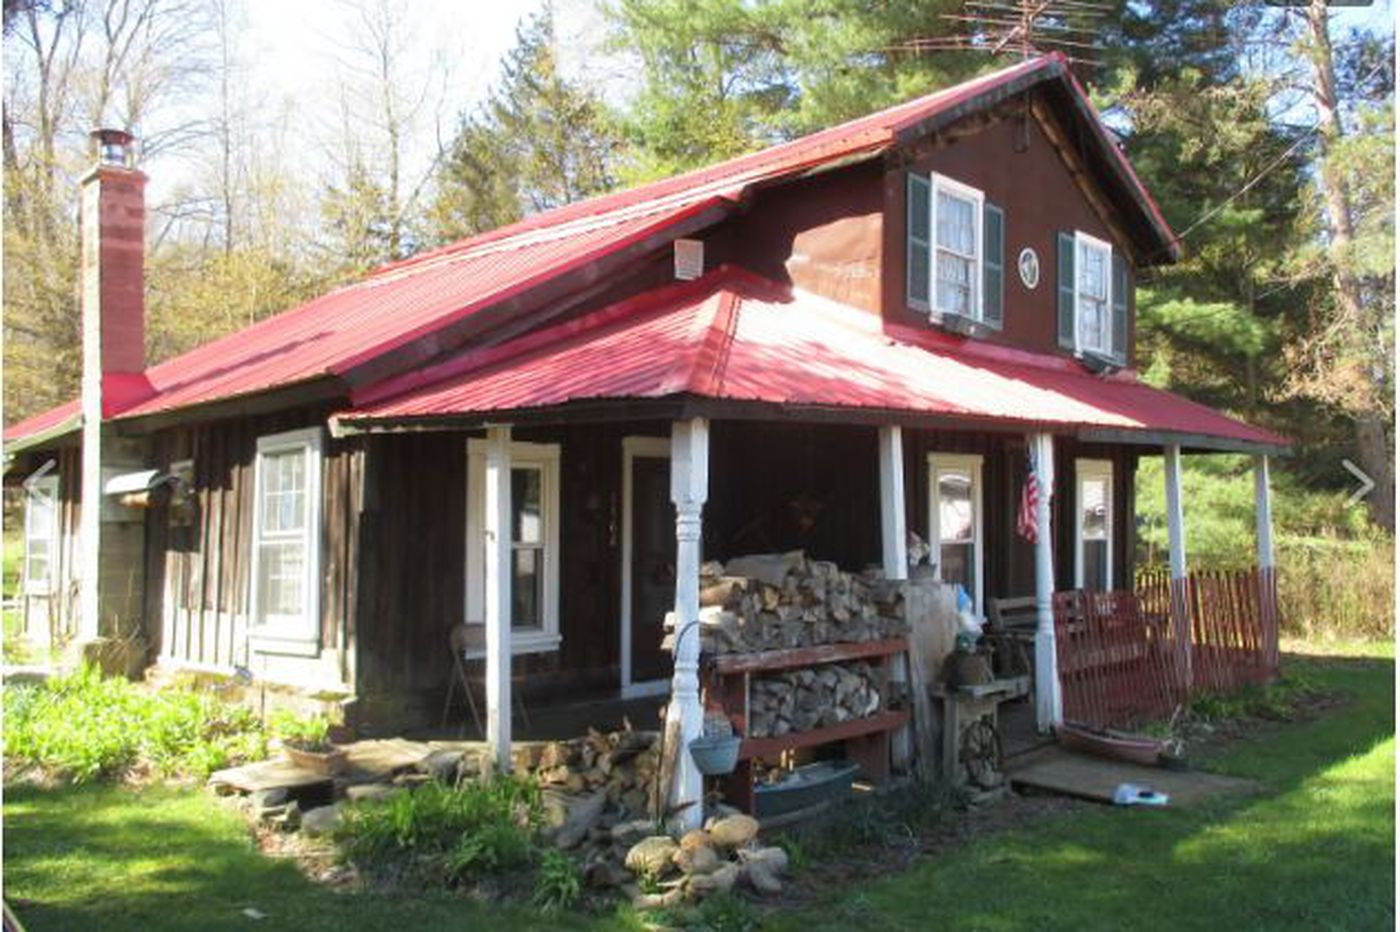 COVID-19 and its side effects have kept rural Pa. real estate agents busy